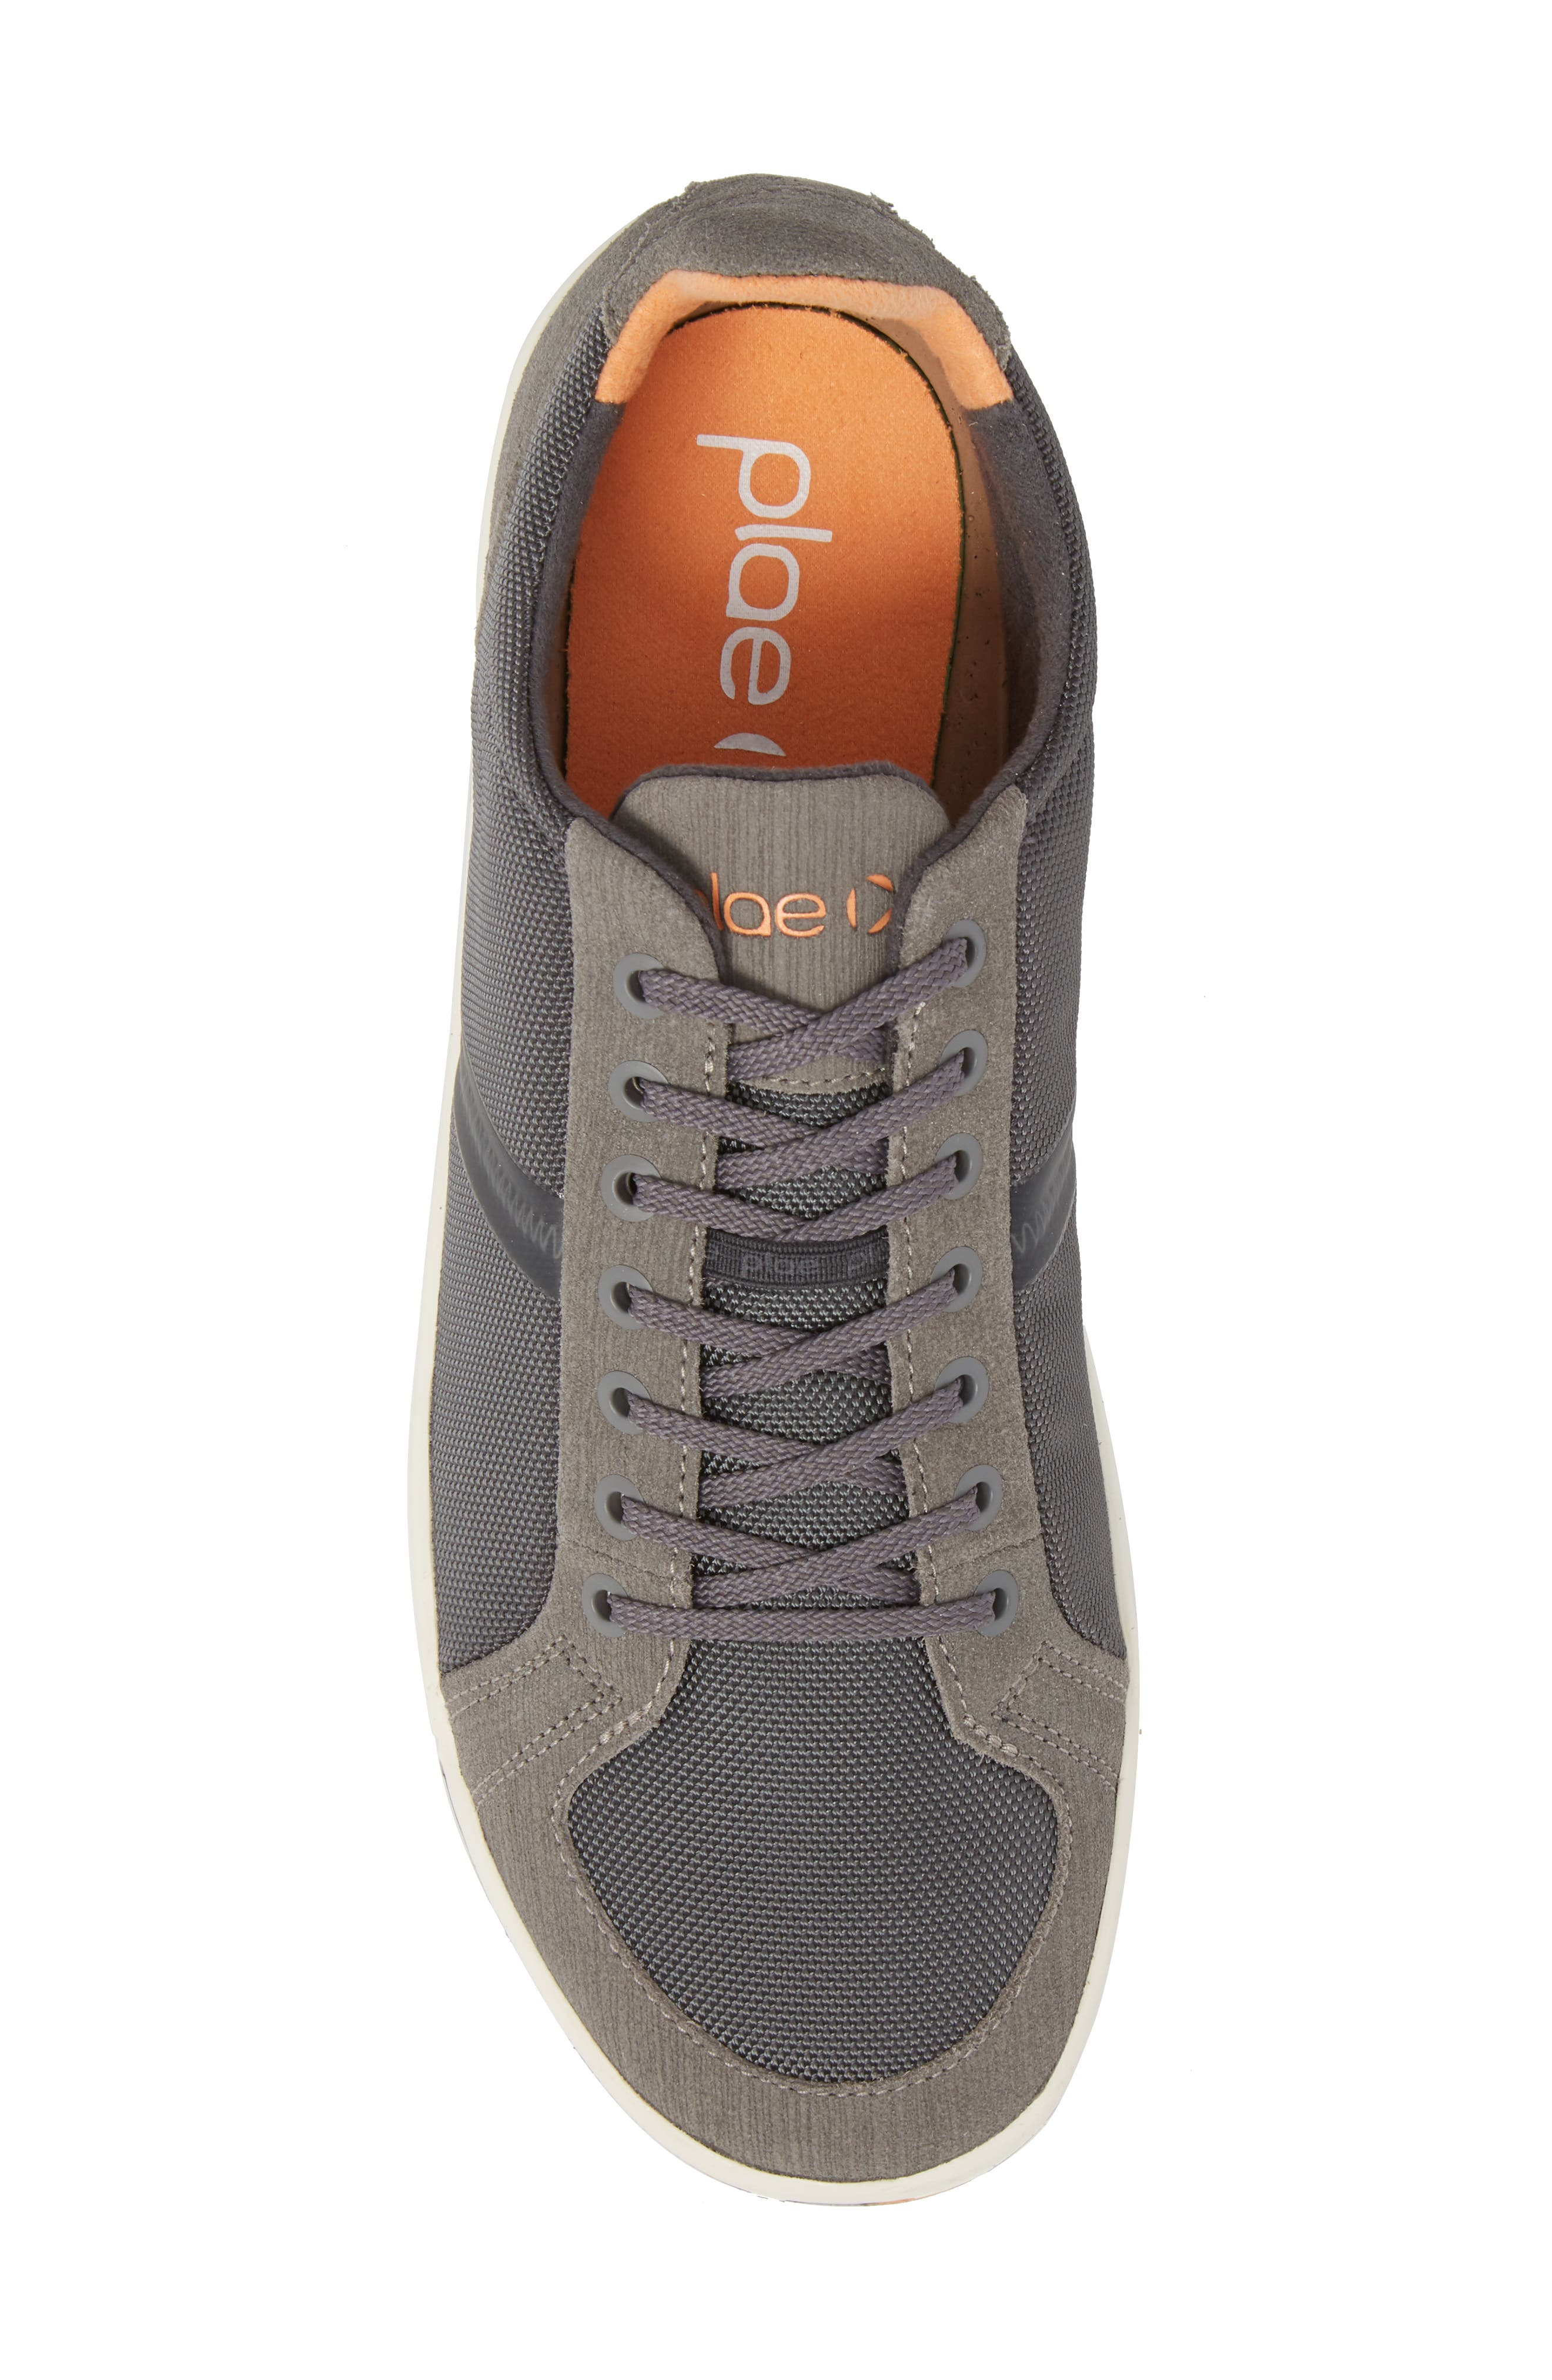 Prospect Low Top Sneaker,                             Alternate thumbnail 5, color,                             HYPERSPACE